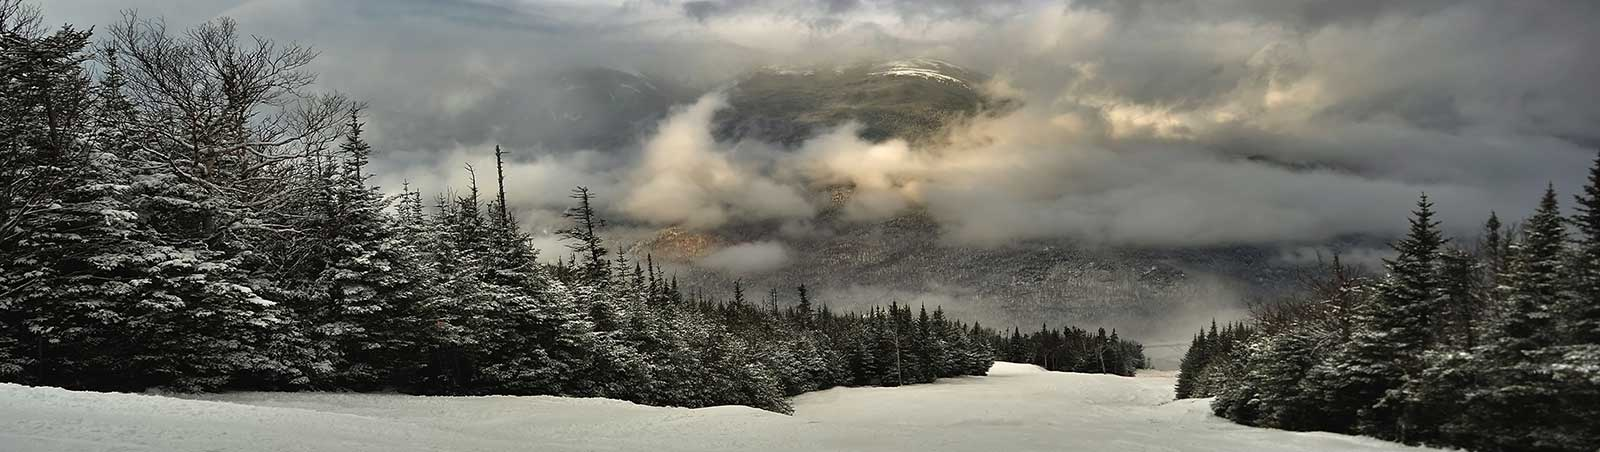 and Wildcat School Ski Trips, View from summit of Wildcat ski area in New Hampshire at early winter